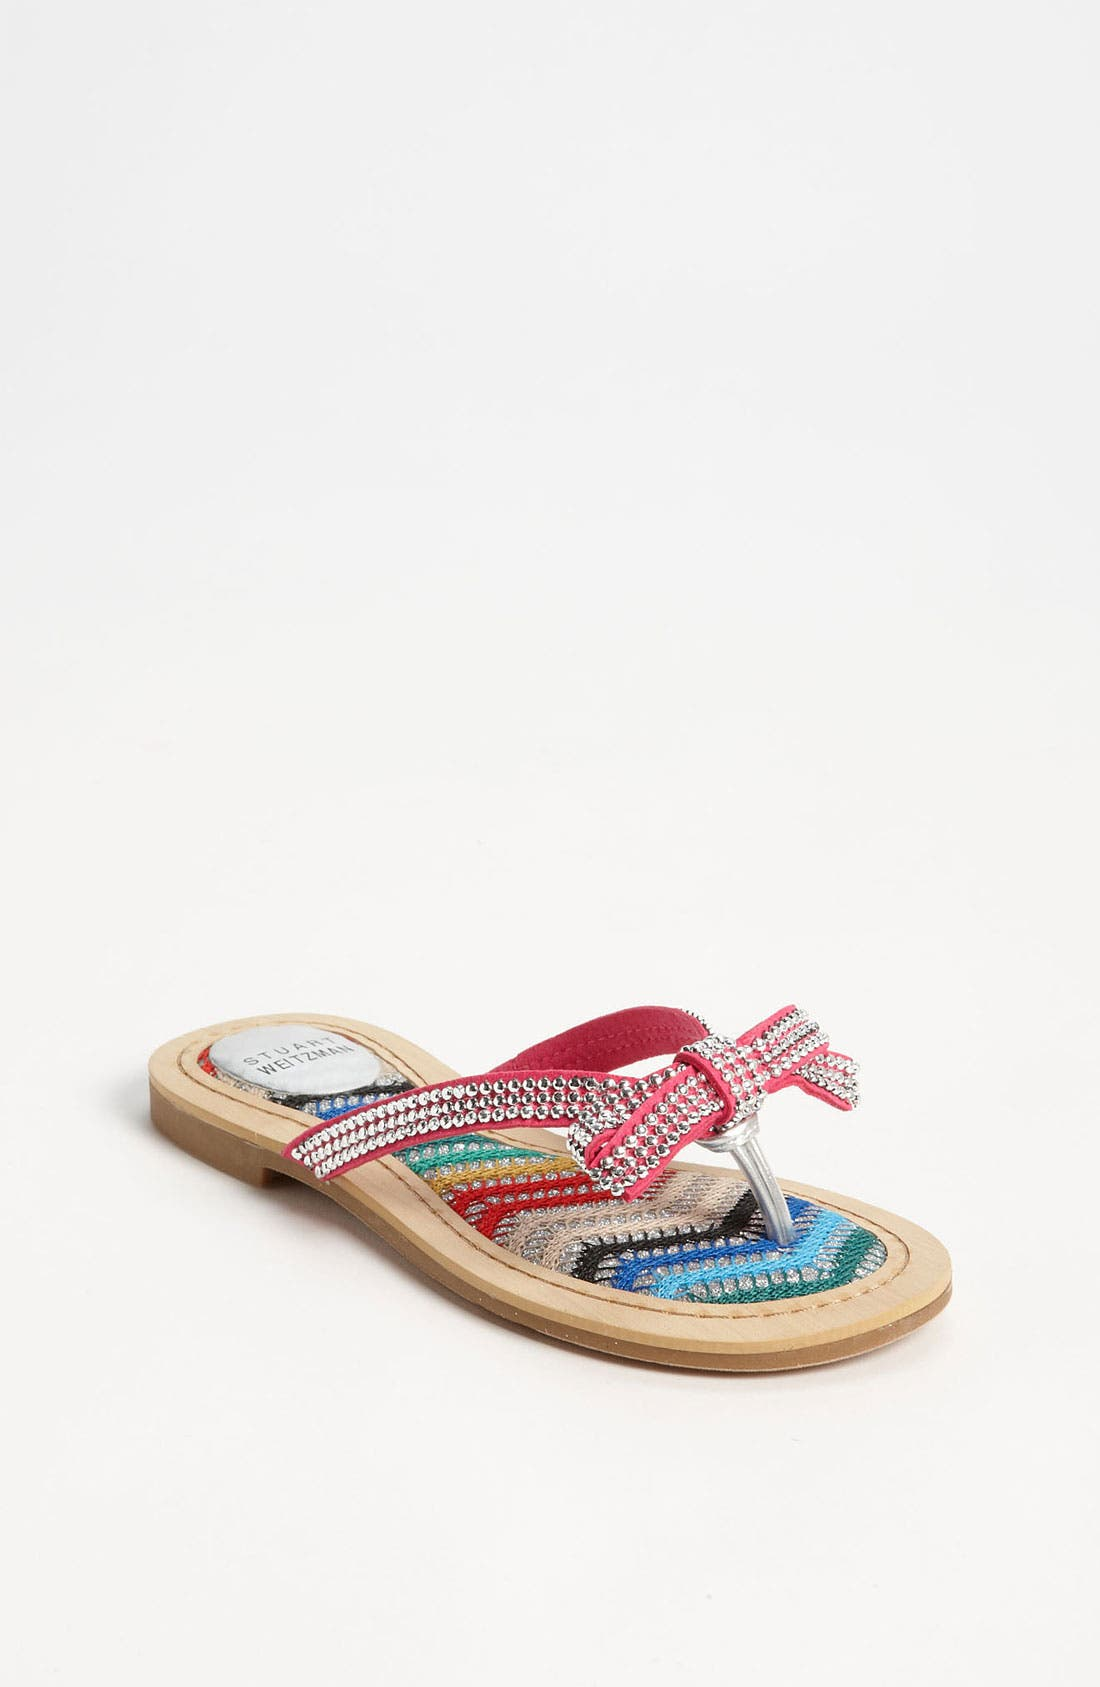 Alternate Image 1 Selected - Stuart Weitzman 'Sycamore' Sandal (Little Kid & Big Kid)